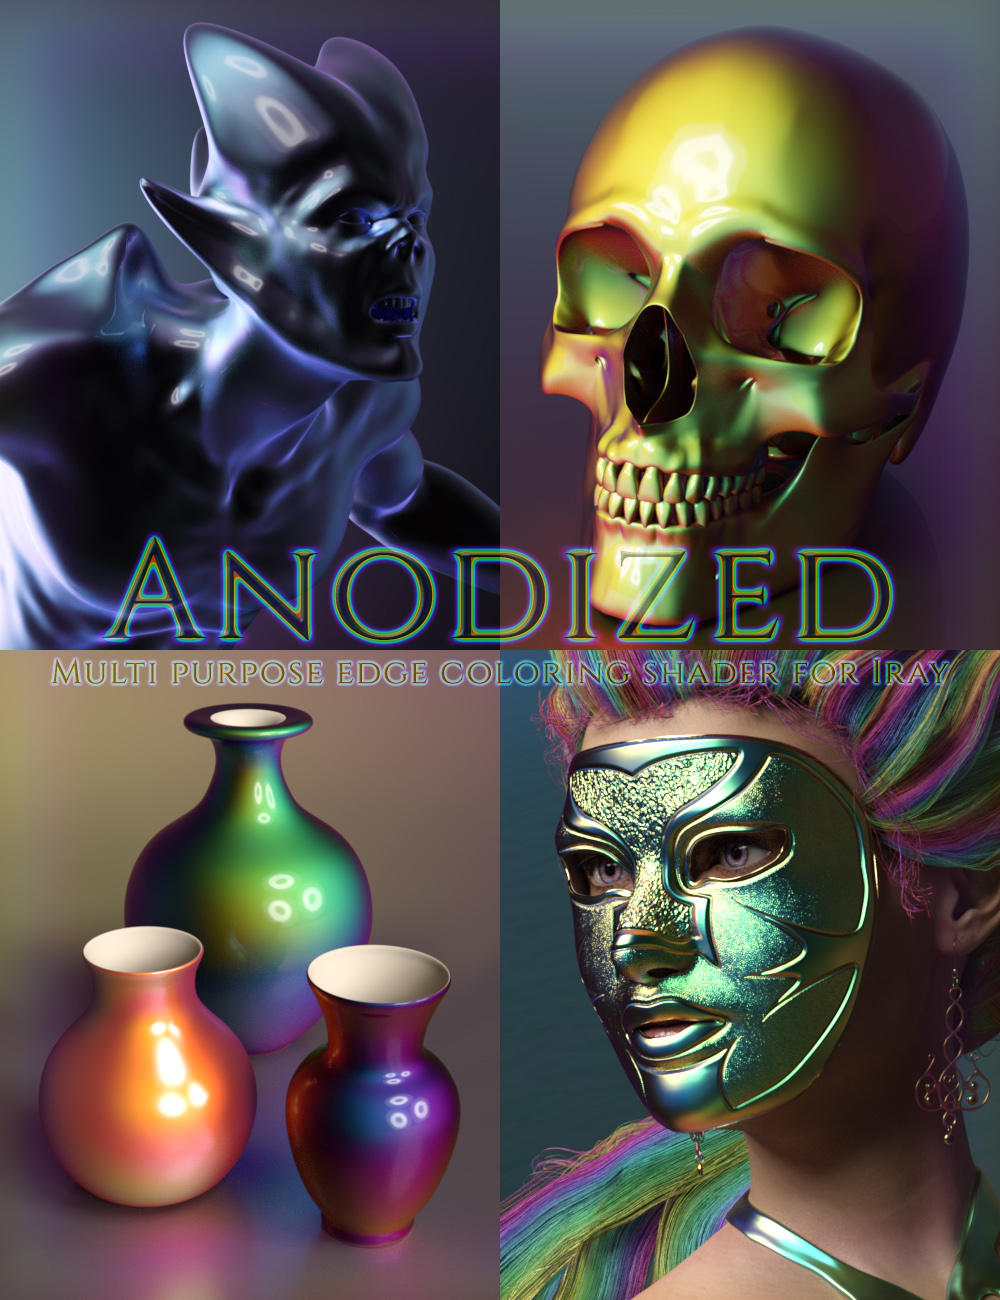 Anodized - Custom Shader and Preset Suite for Iray by: DimensionTheory, 3D Models by Daz 3D